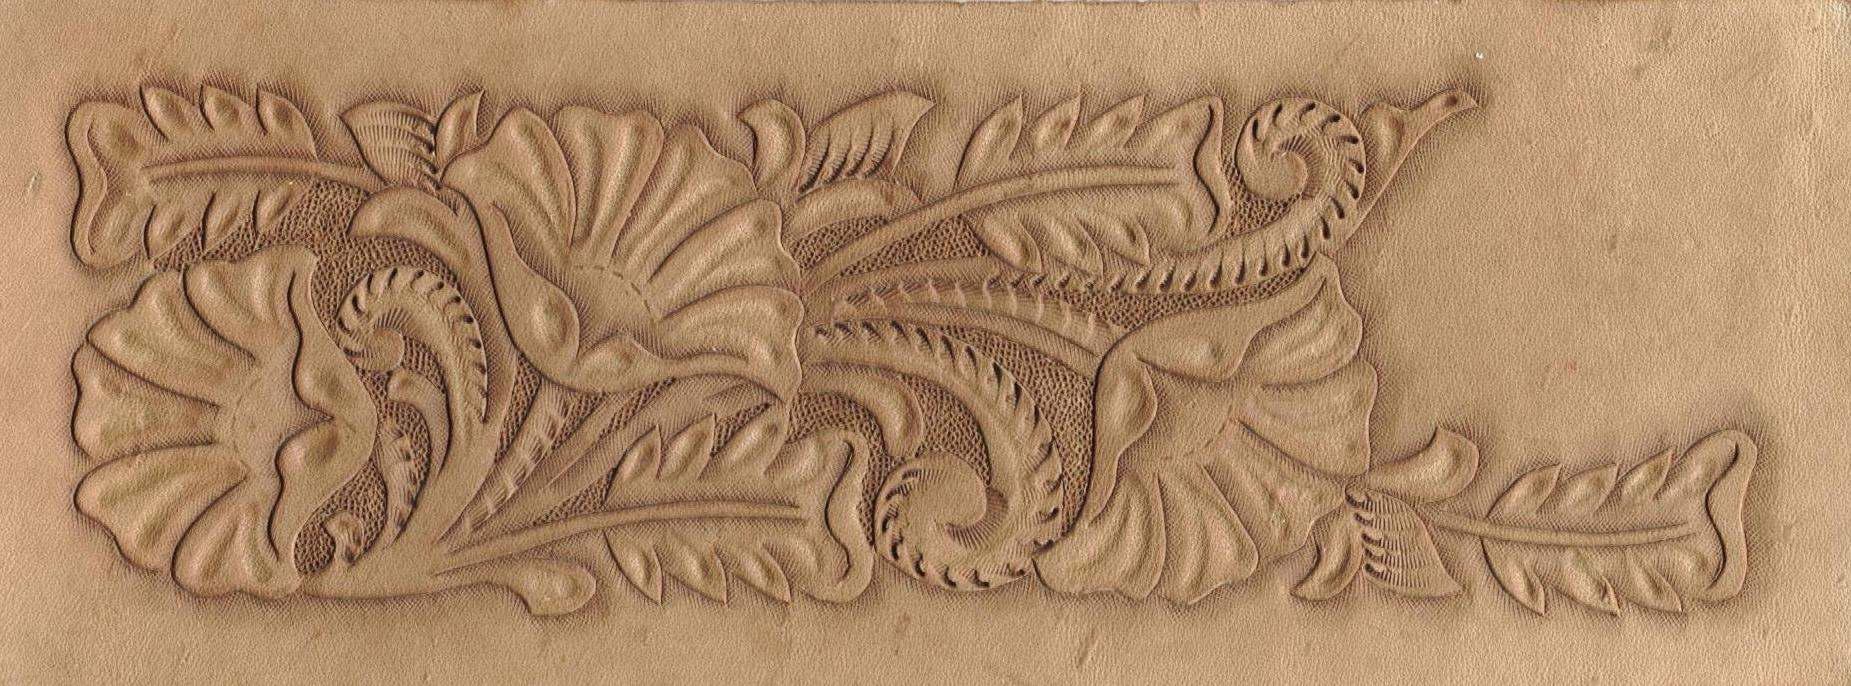 Tooled Leather Background Step 6 background to fill in 1851x686